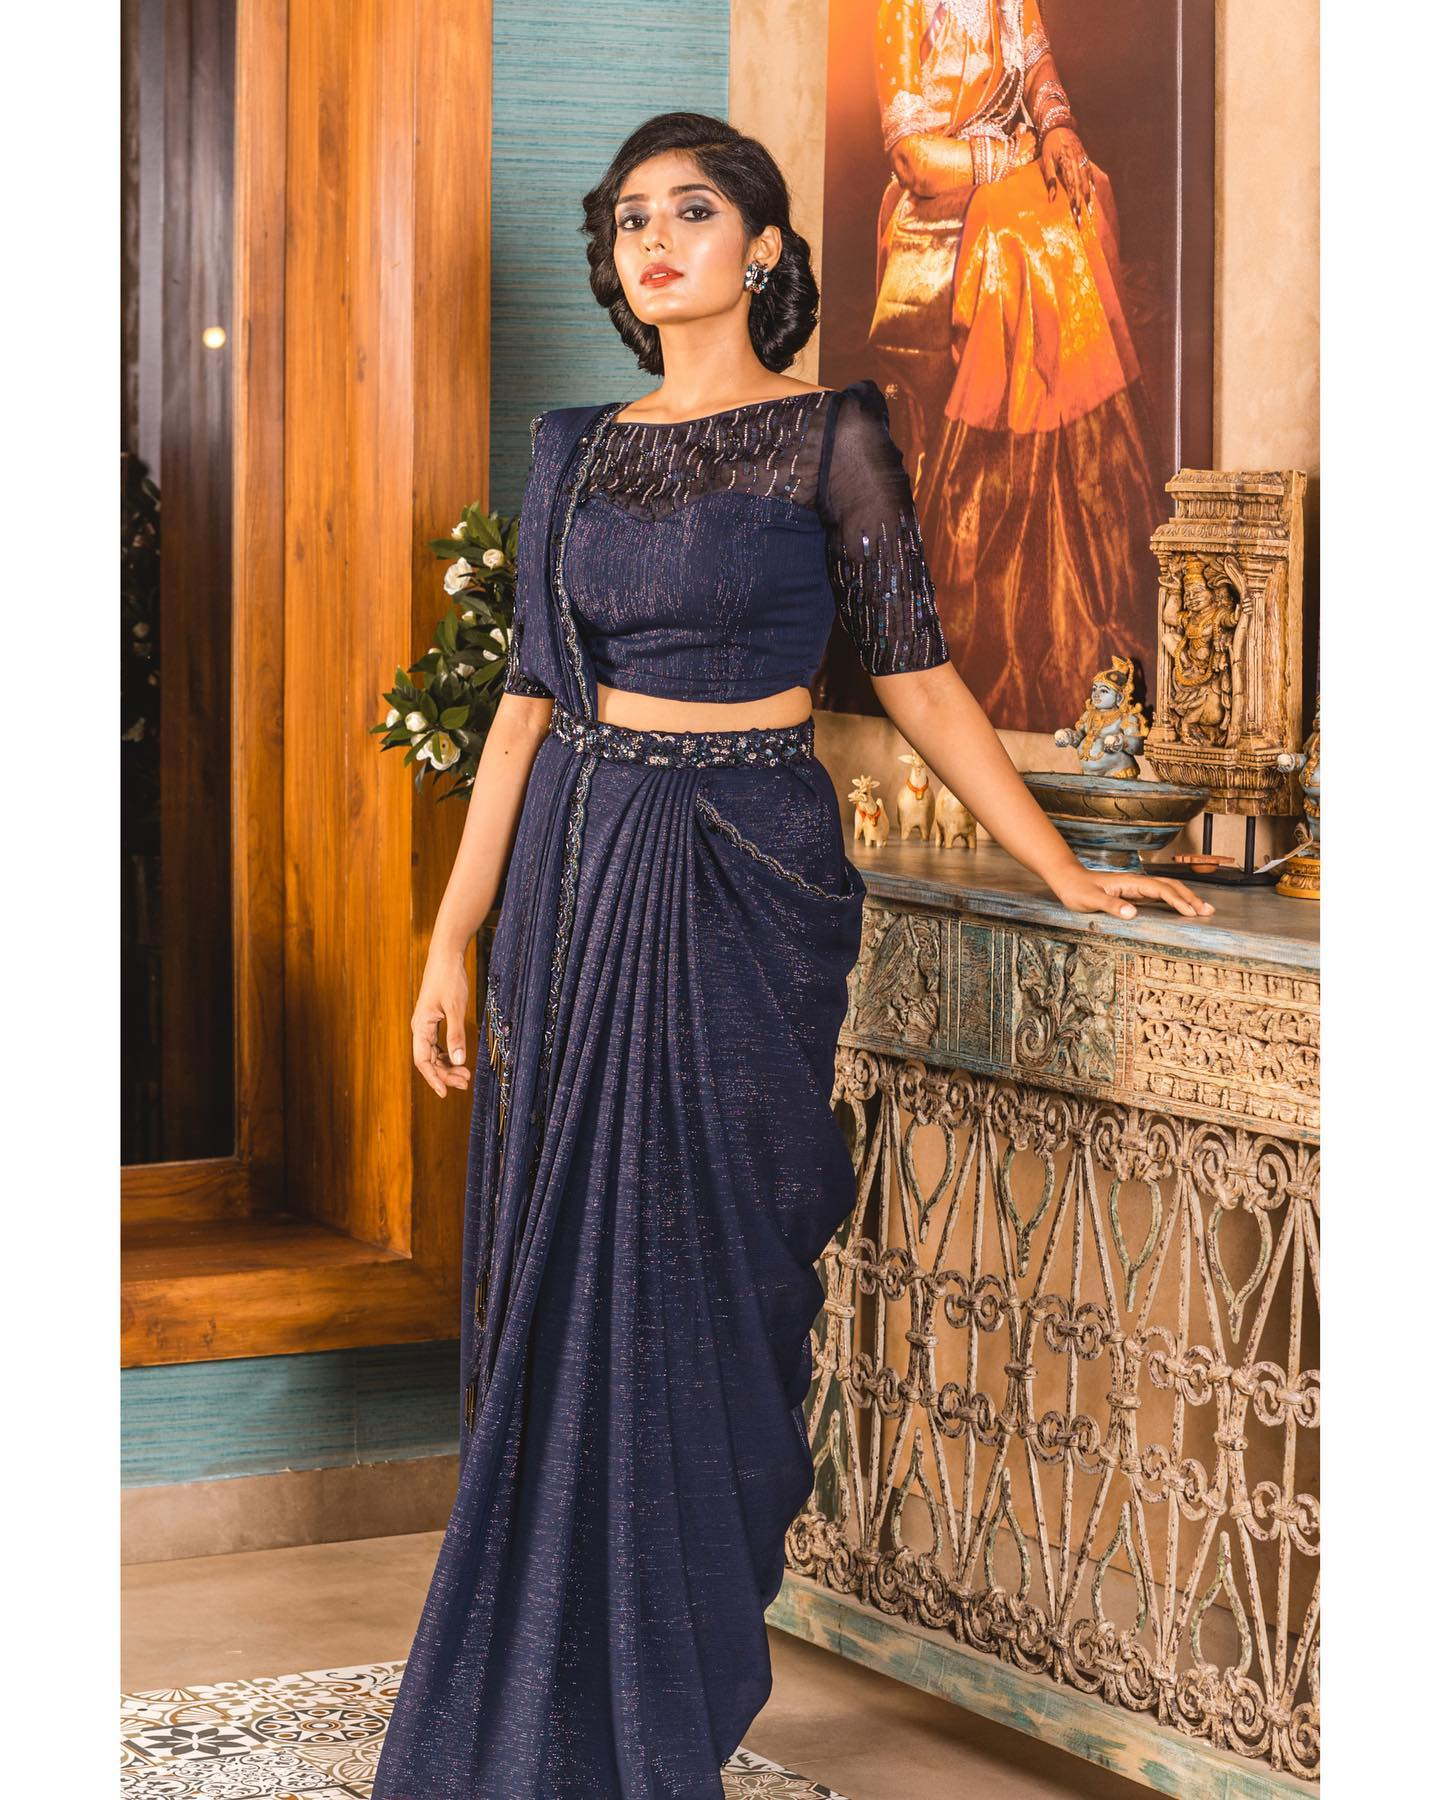 Drape Saree Shimmer Georgette Sequin Embellished Drape Saree A Perfect Evening Party Outfit Bollywood Style Saree Paithani Blouse Designs 2020 Saree Ki Design 2020 12 15